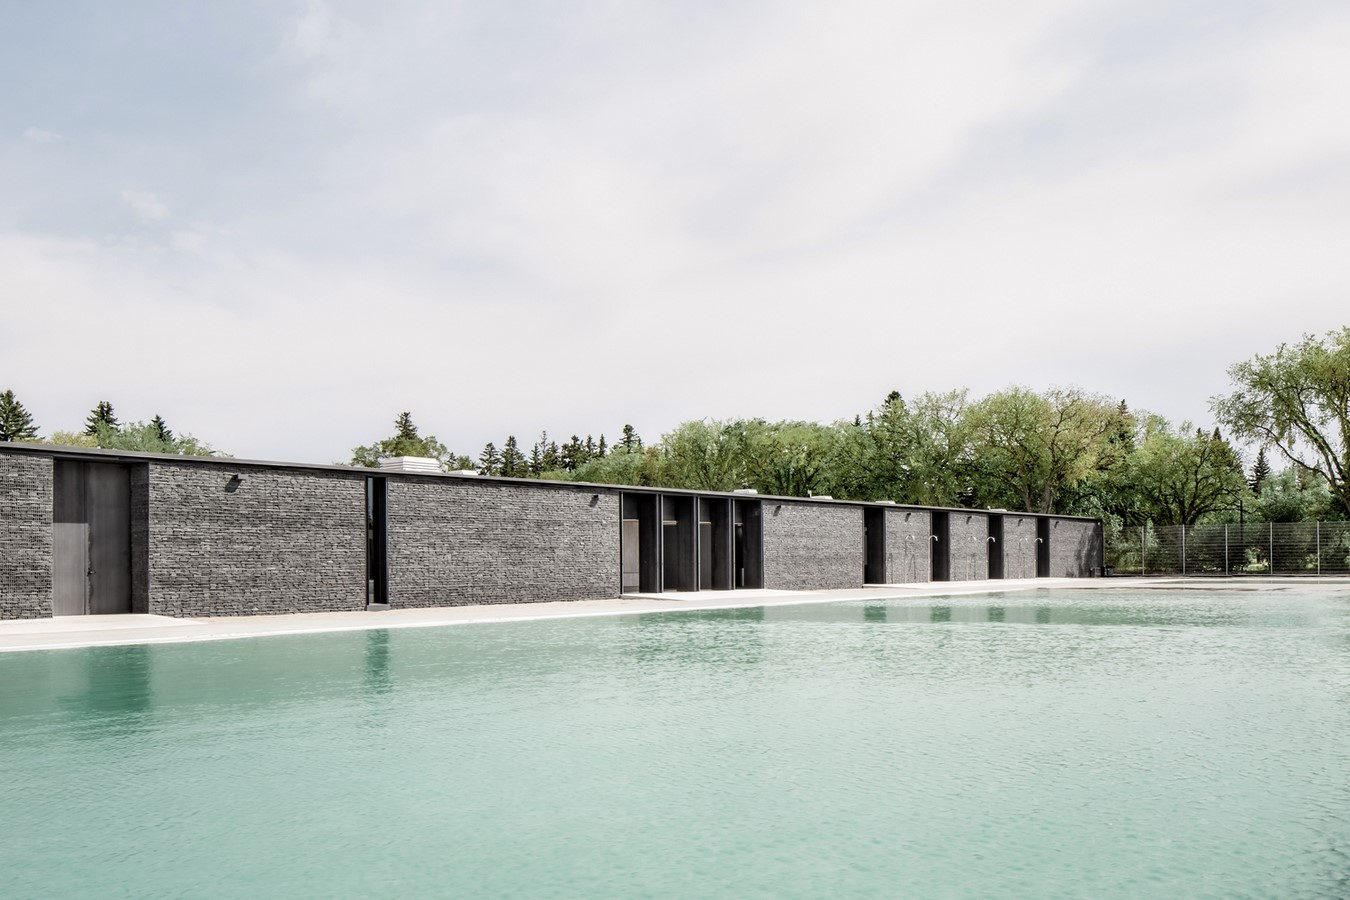 Borden Park Natural Swimming Pool, Canada, by gh3 - Sheet 2